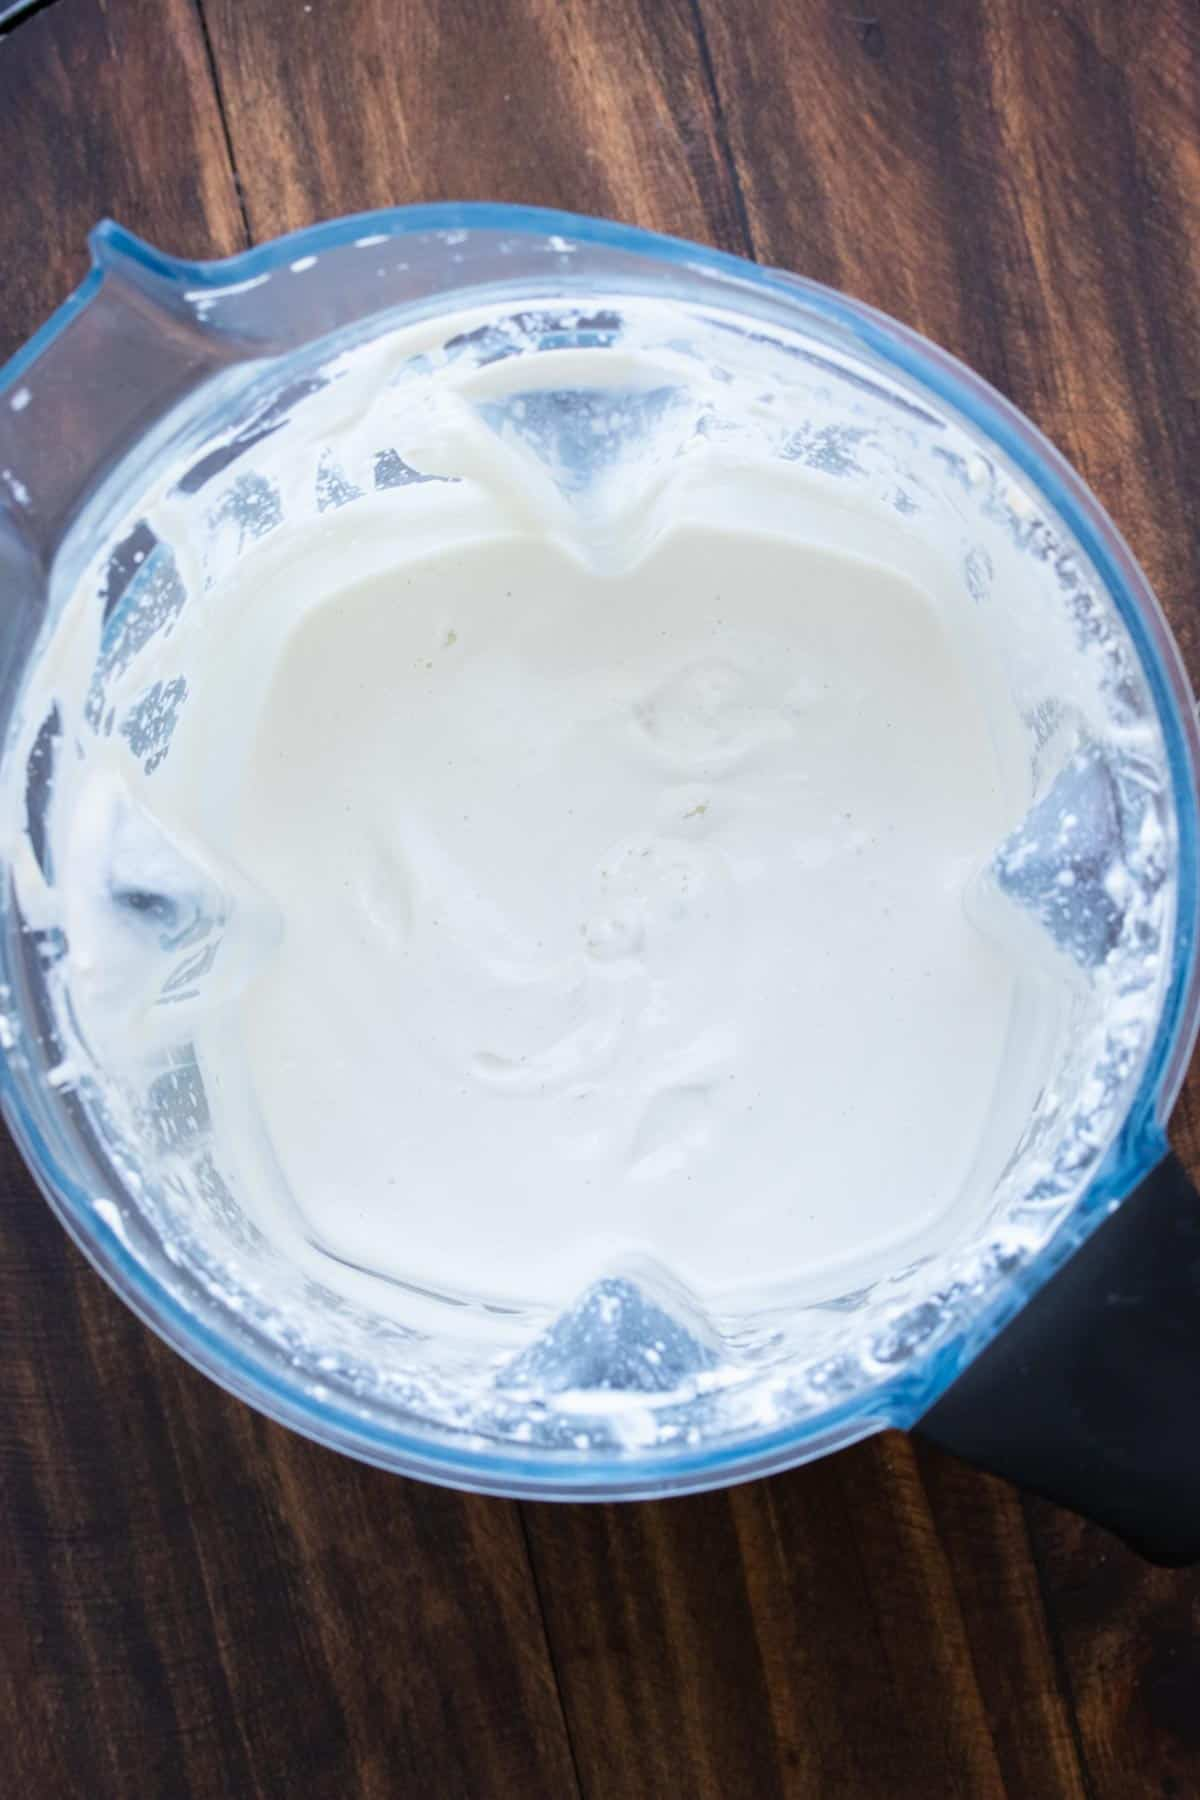 Top view of blender with homemade yogurt inside